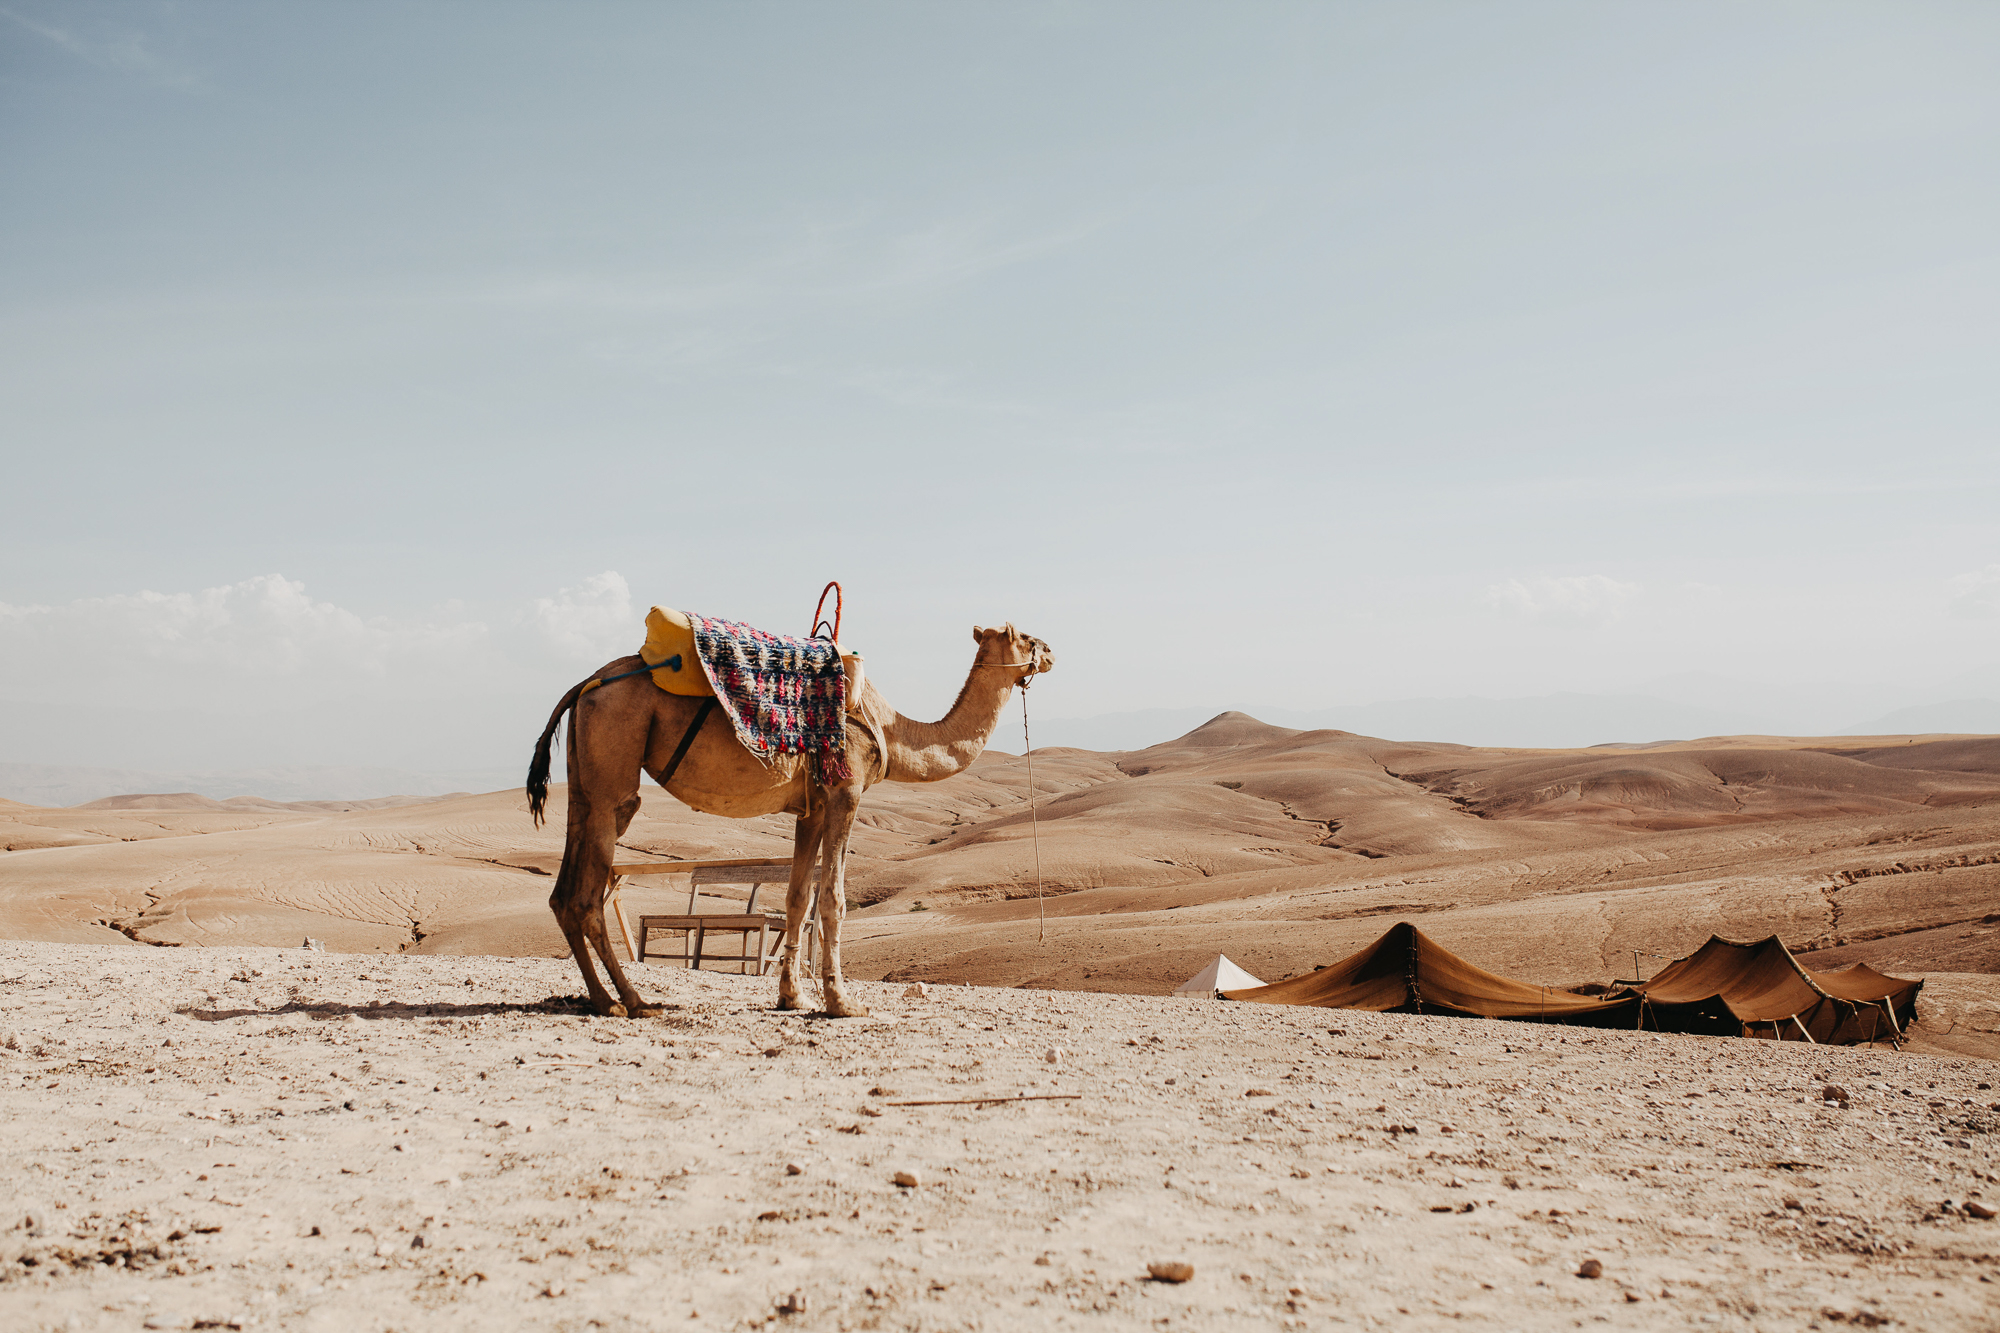 Meg's images from Morocco